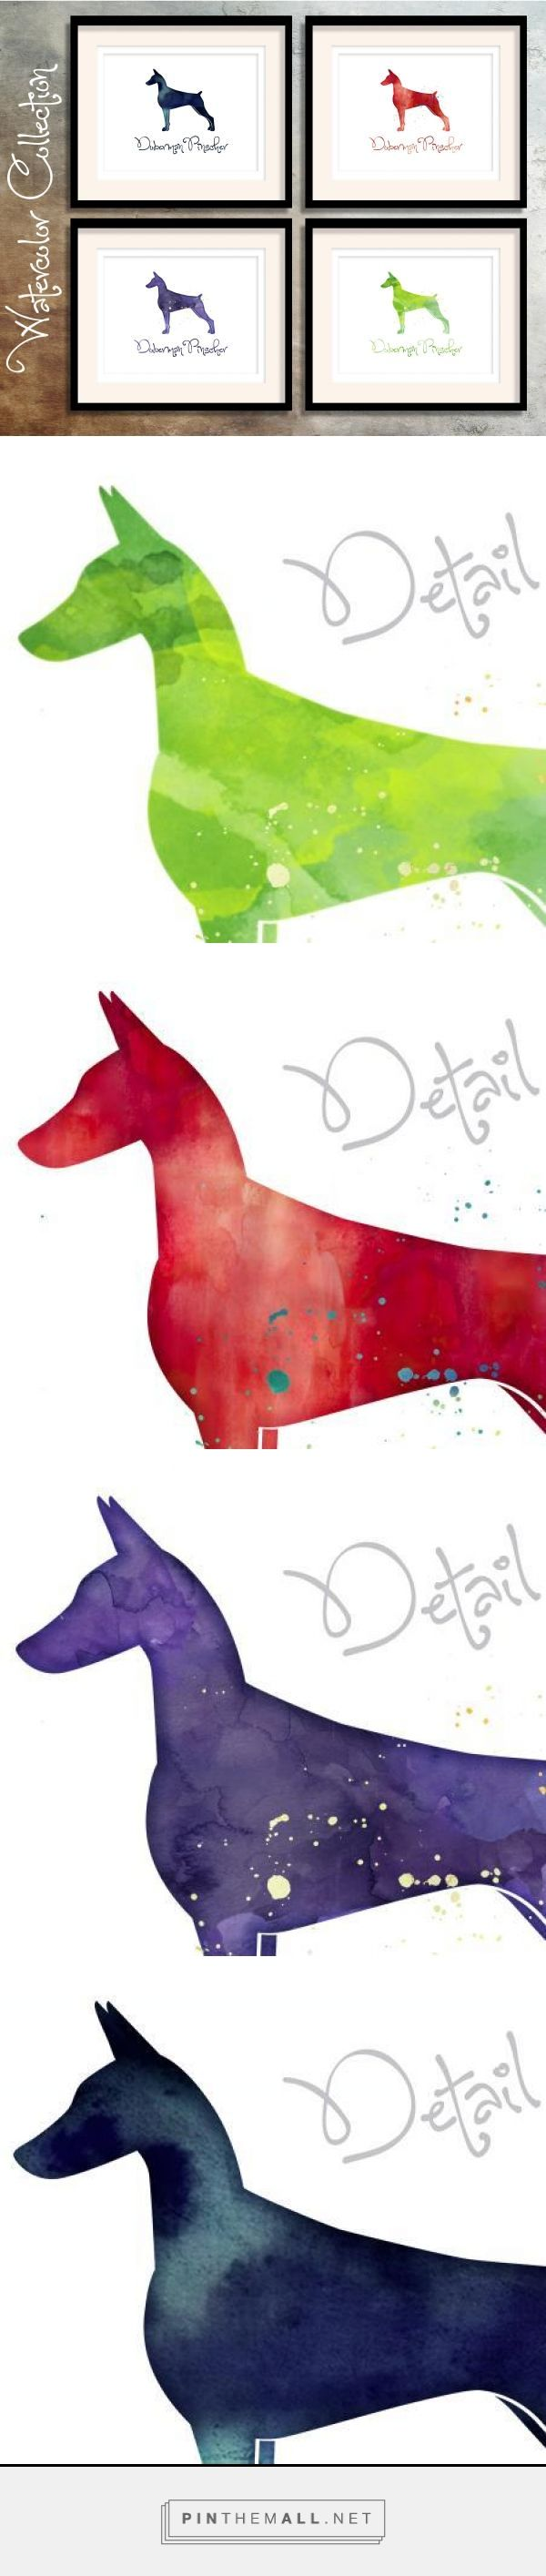 ❤ Doberman Pinscher- Watercolor Silhouette Collection from the Breed Collection - Digital Download Printable - Frameable 8x10